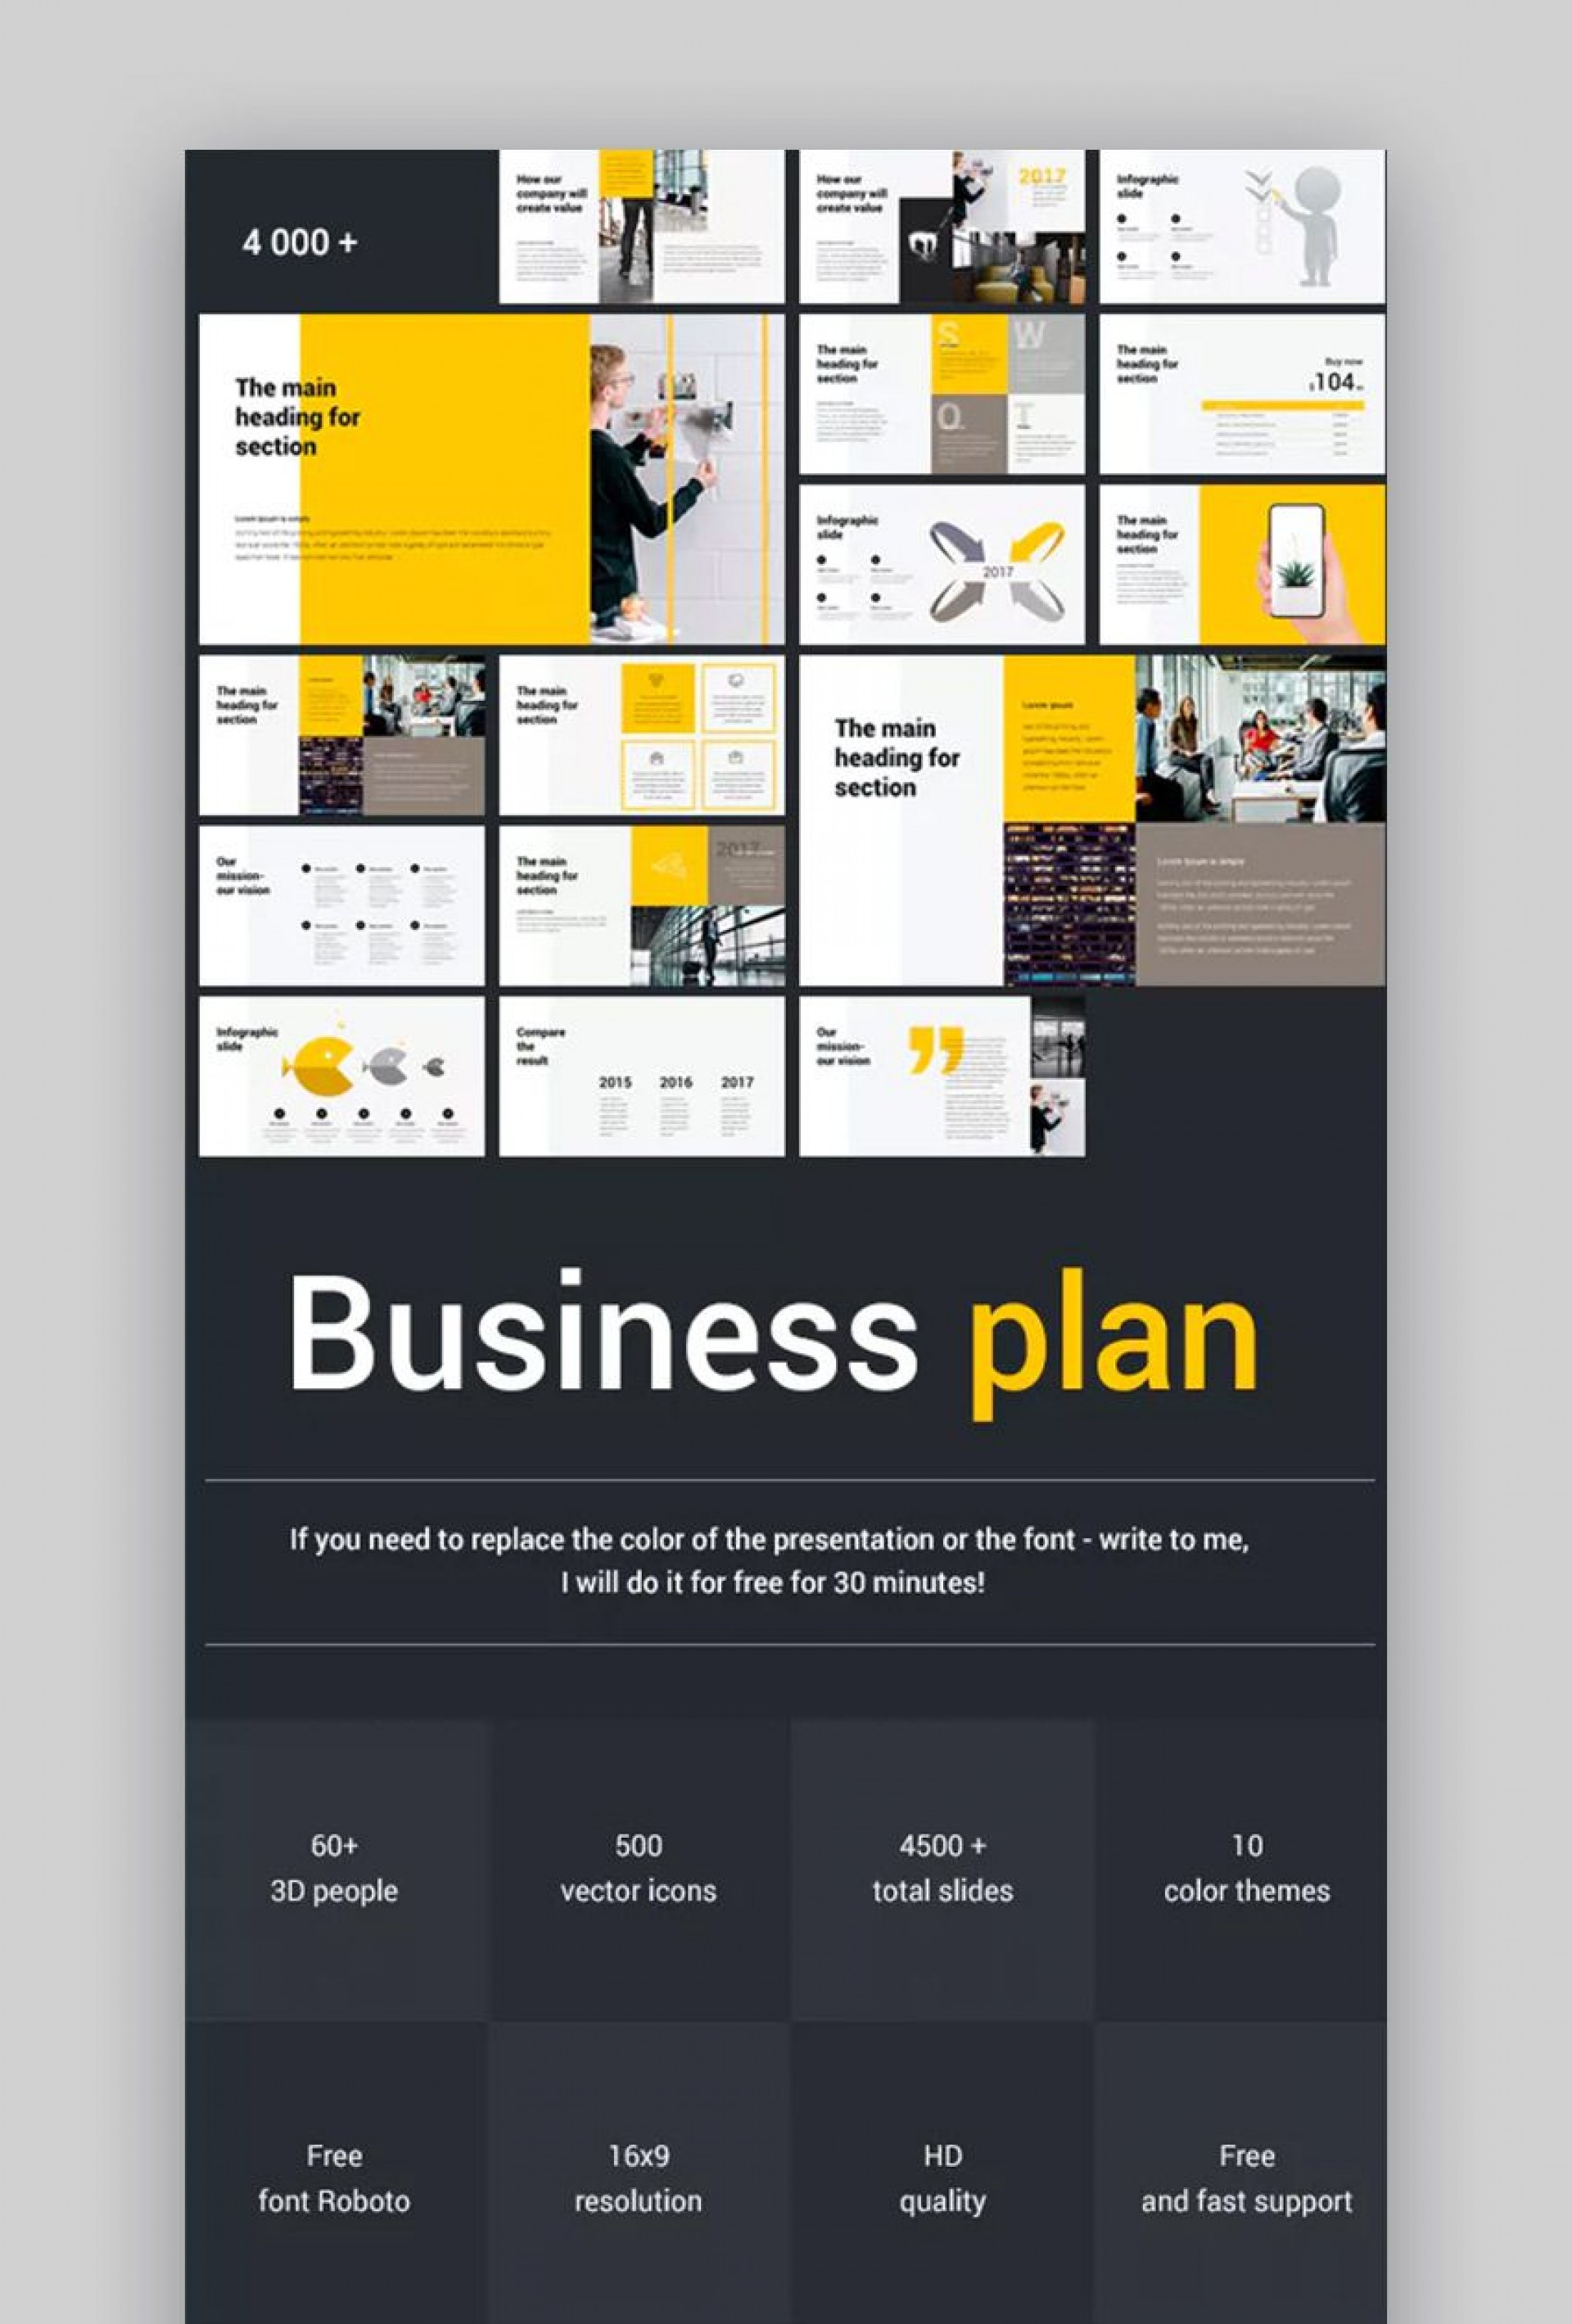 003 Staggering Free Busines Proposal Template Powerpoint Photo  Best Plan Ppt 2020 Sale1920